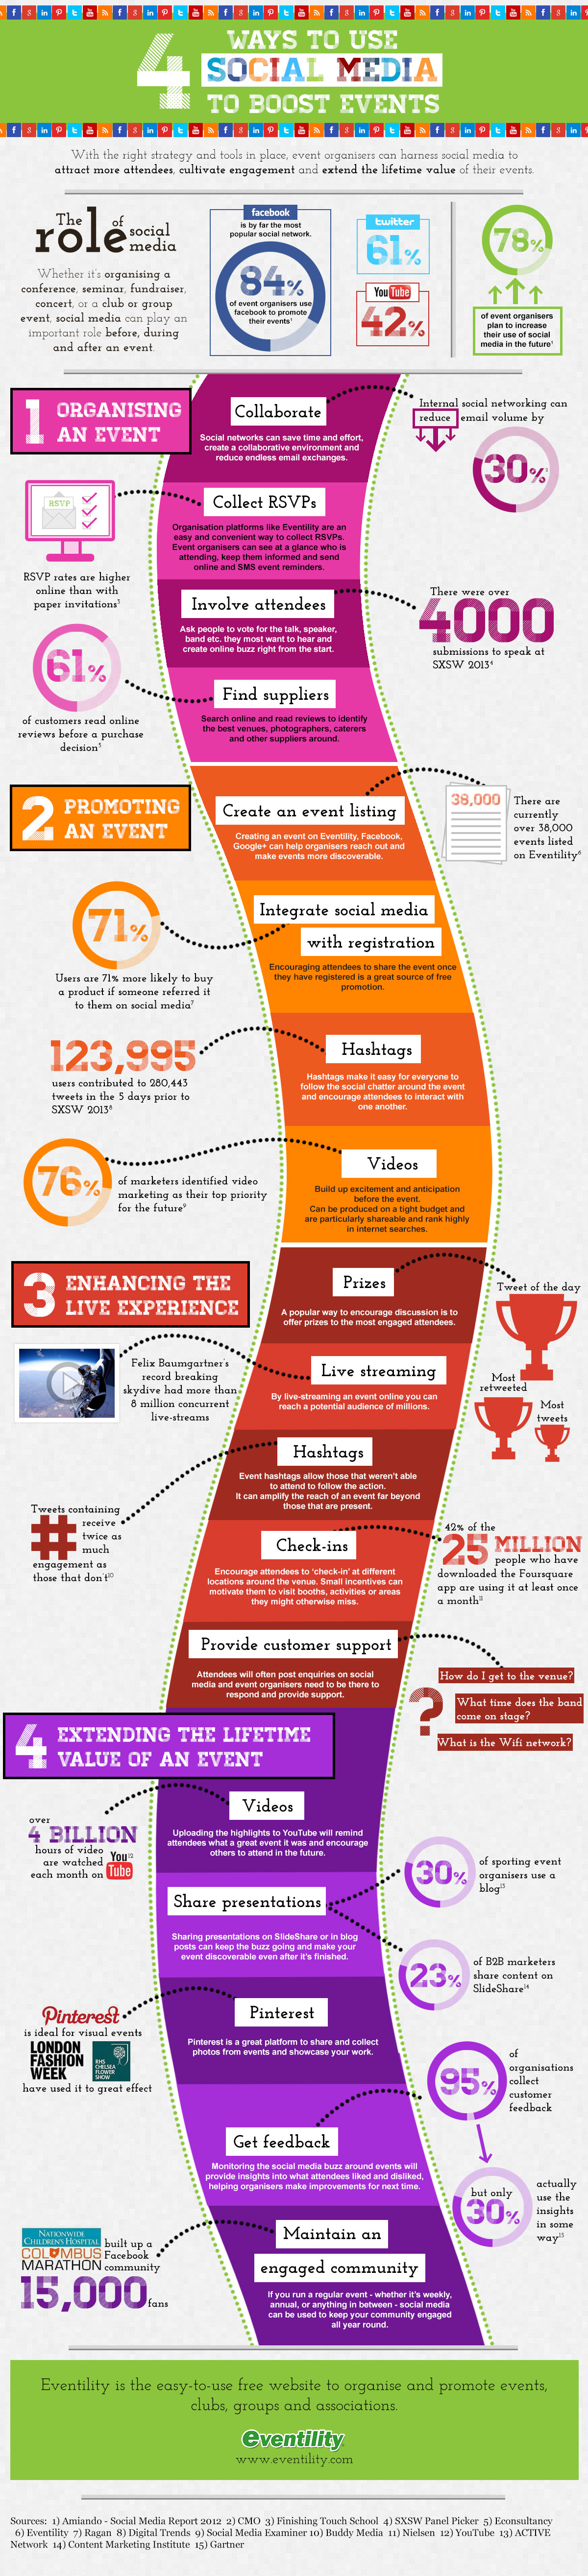 Boost your Event using Social Media Infographic